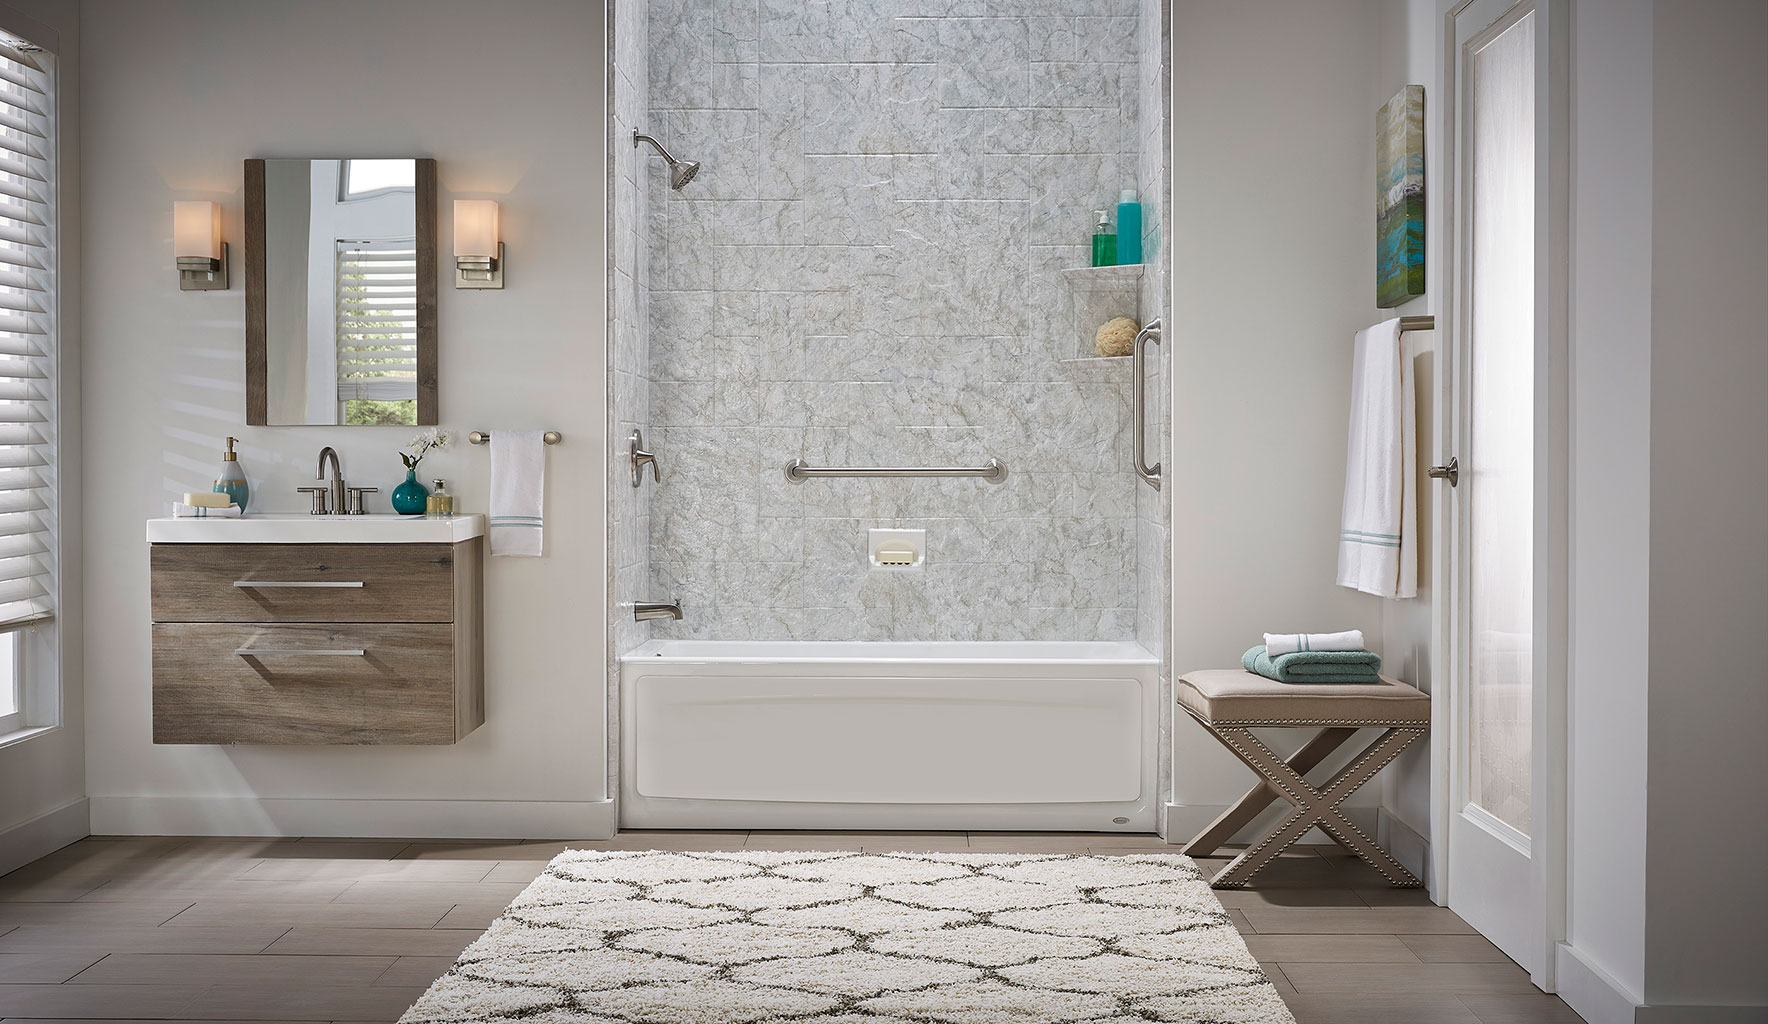 Bathroom Safety Is Important: A Shower Remodel Can Help